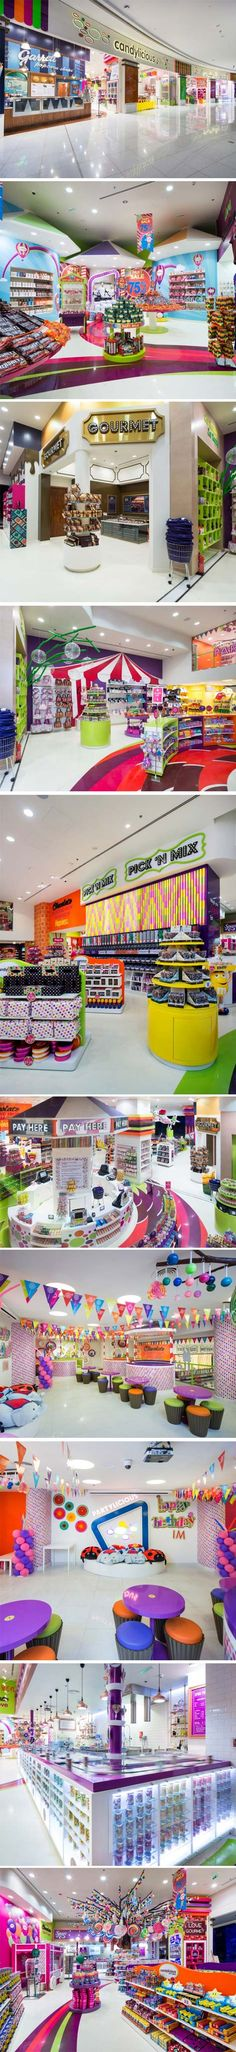 Candylicious at The Dubai Mall by Studio EM, Dubai – UAE.